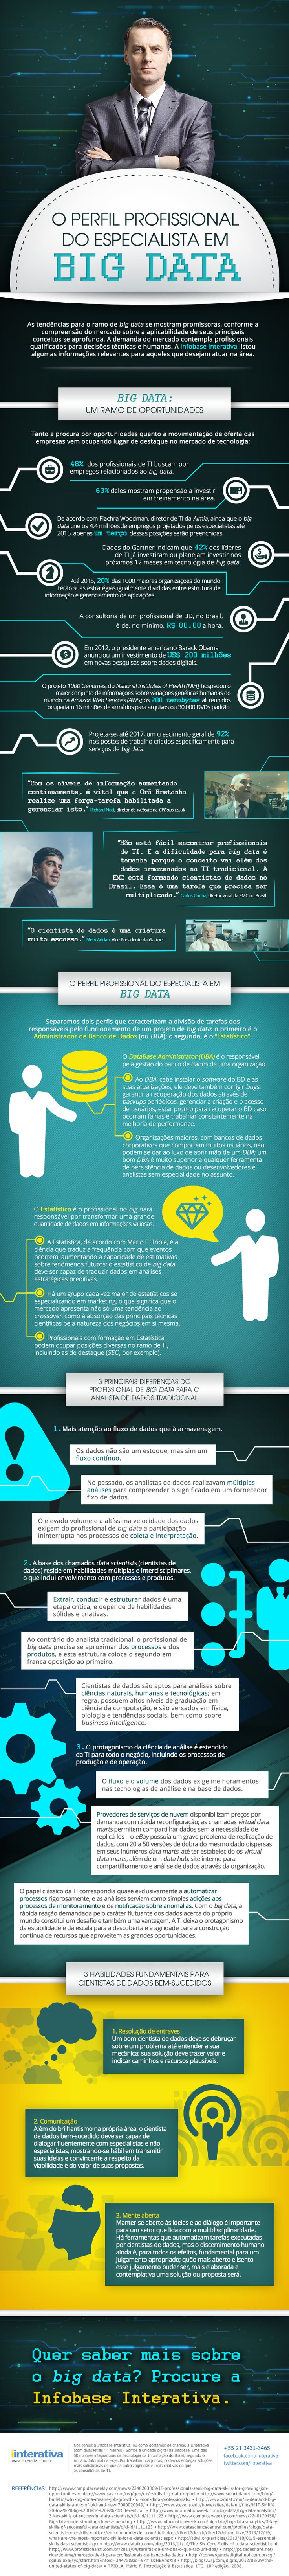 https://social-media-strategy-template.blogspot.com/ #BigData [INFOGRAFICO] PERFIL PROFISSIONAL BIG DATA definitivo